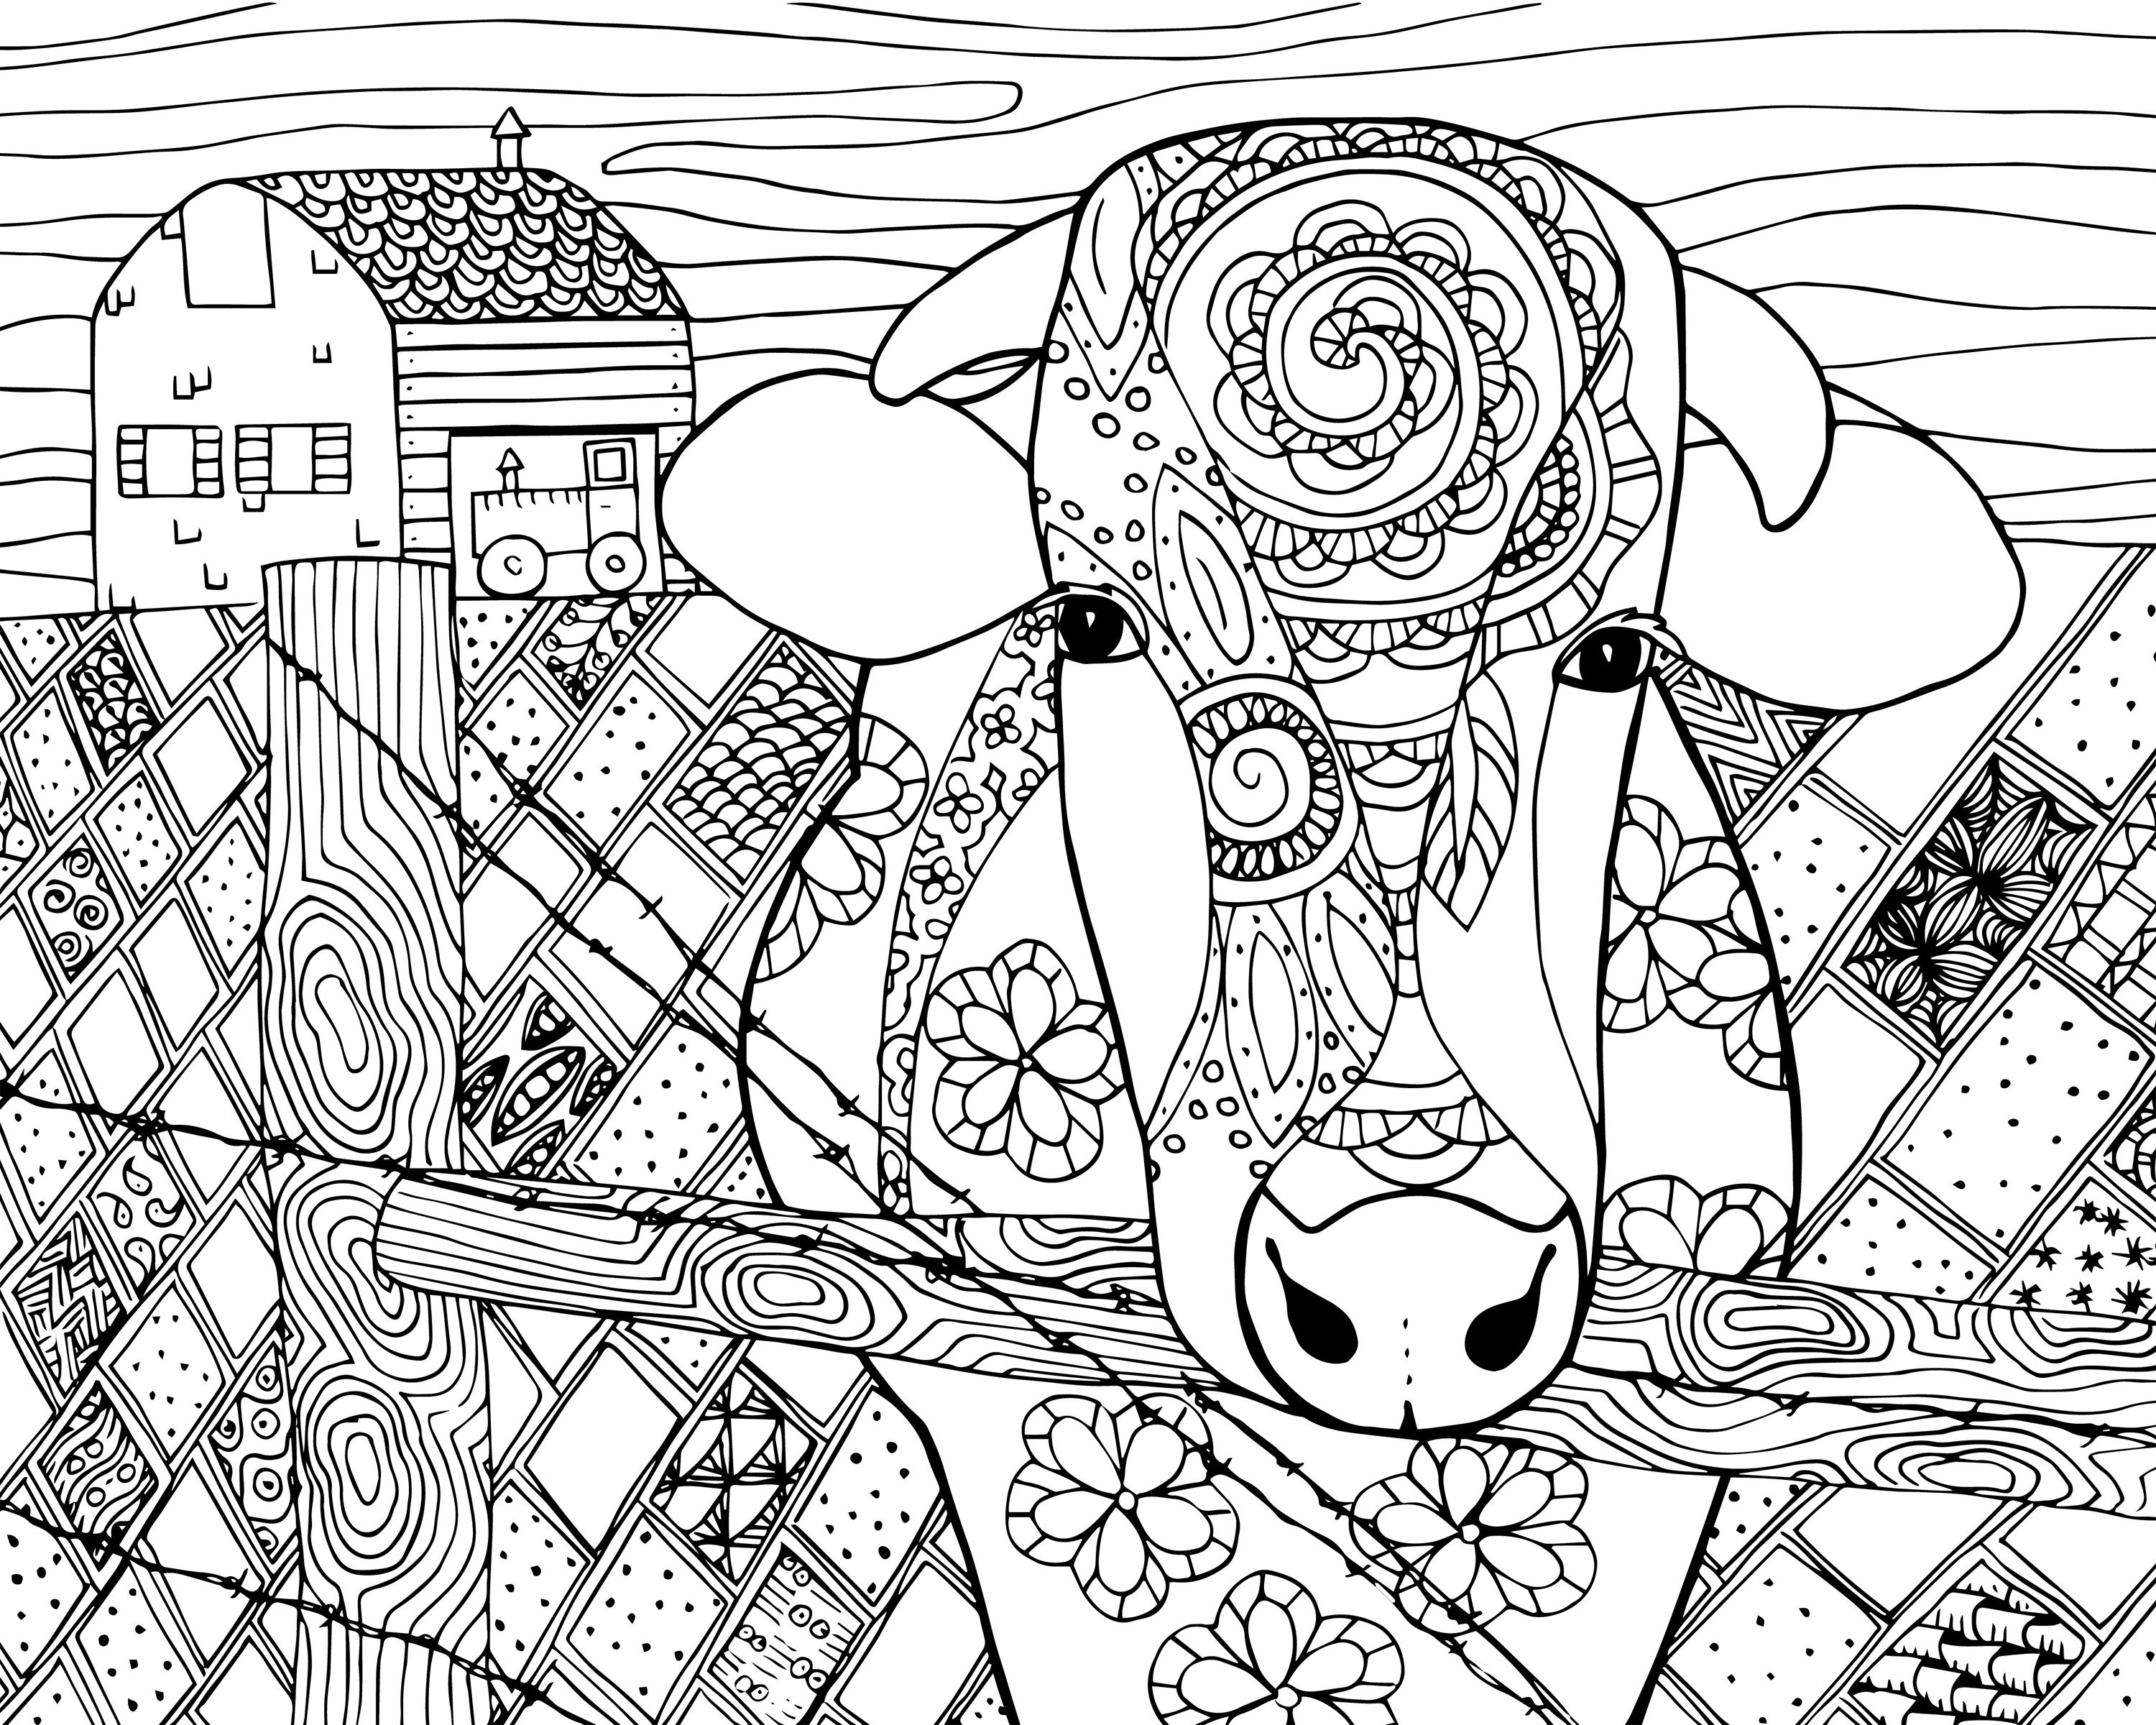 Free Coloring Pages Adults Art And Abstract Category Image 62